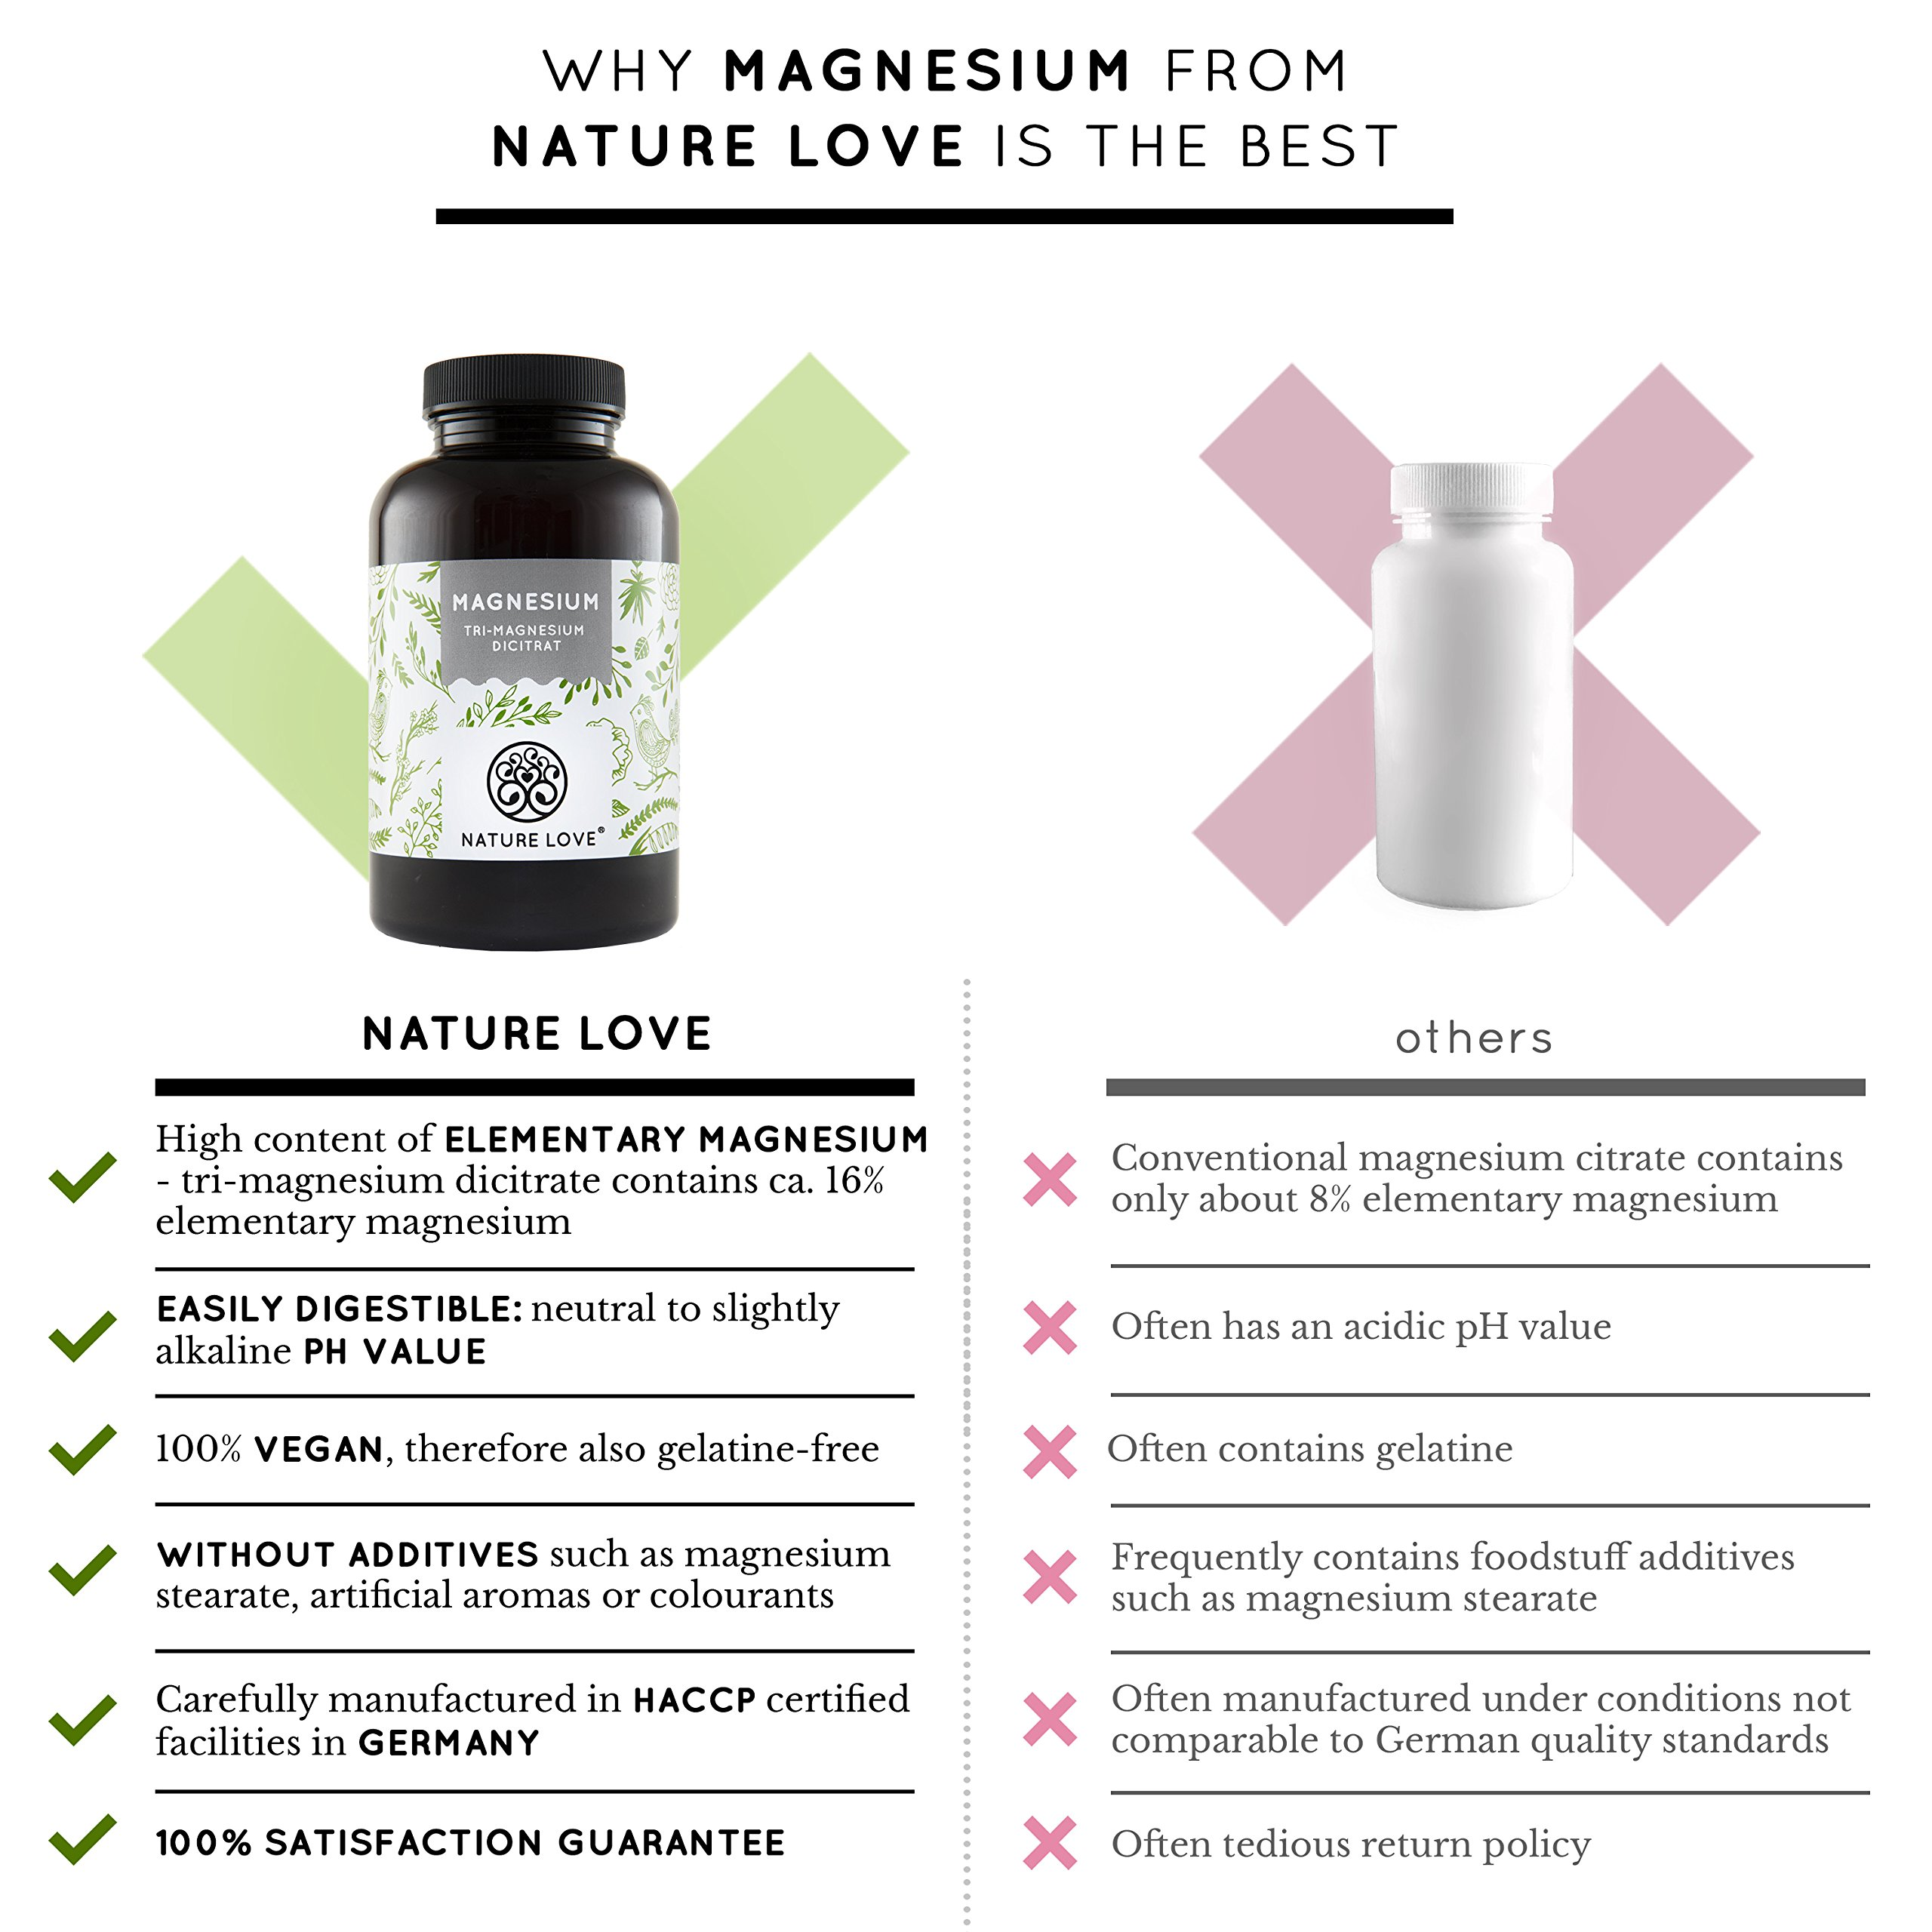 Magnesium – 2250 mg magnesium citrate per daily dose, of which 360 mg is elementary magnesium. 180 capsules. Laboratory tested and without added magnesium stearate. High dosage, vegan, and made in Germany